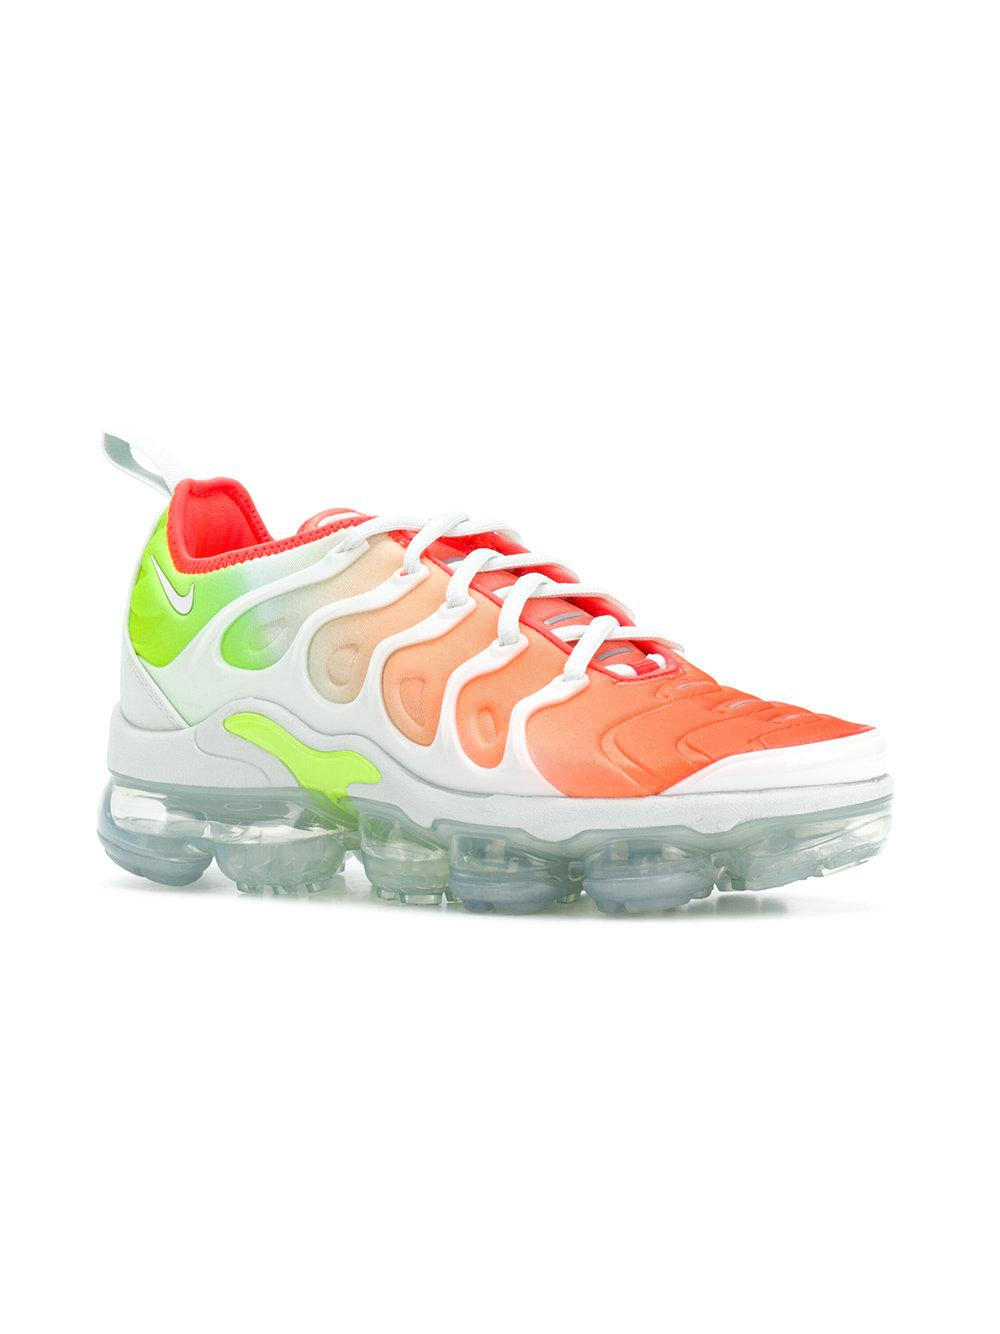 a26e005021 Nike Air Vapormax Plus Sneakers - Lyst